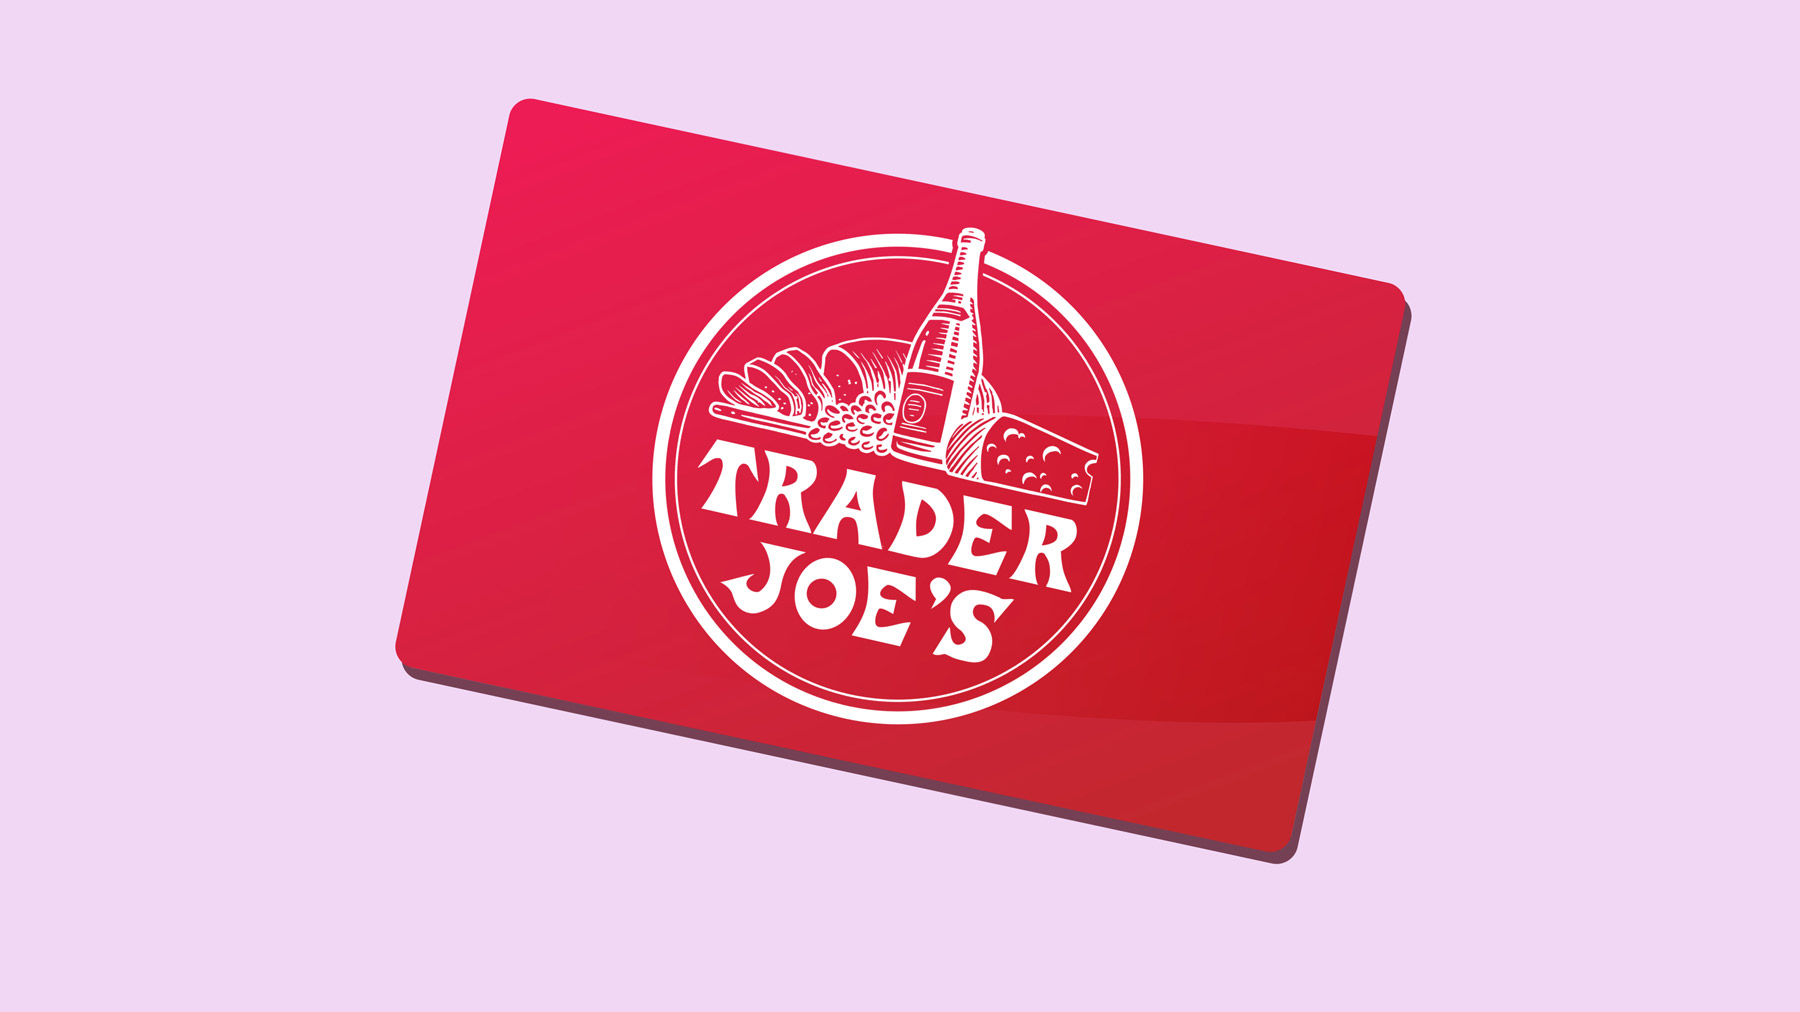 Trader Joe's gift cards - where you can buy, who sells, online options, and more